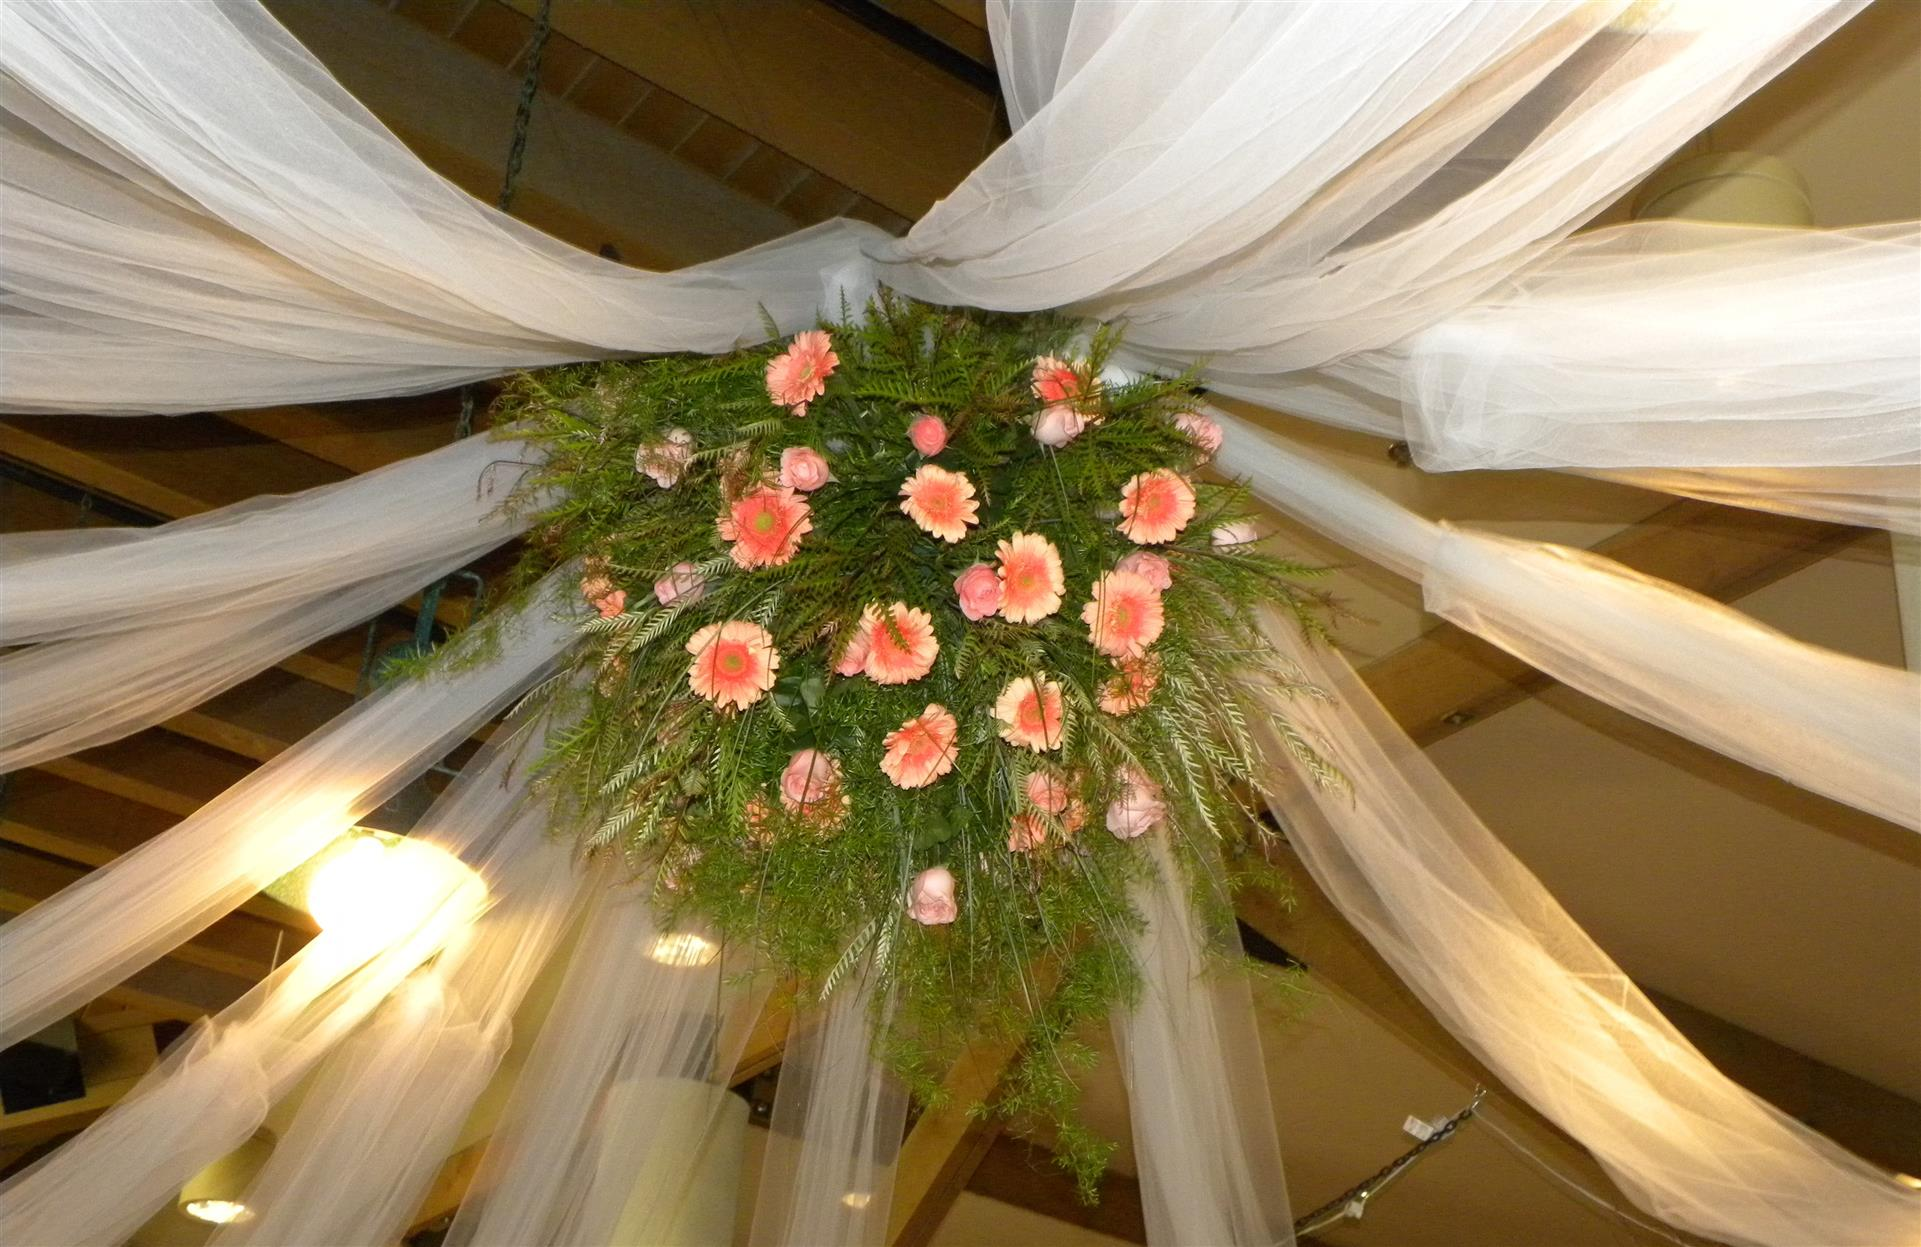 party decor on the ceiling with flowers